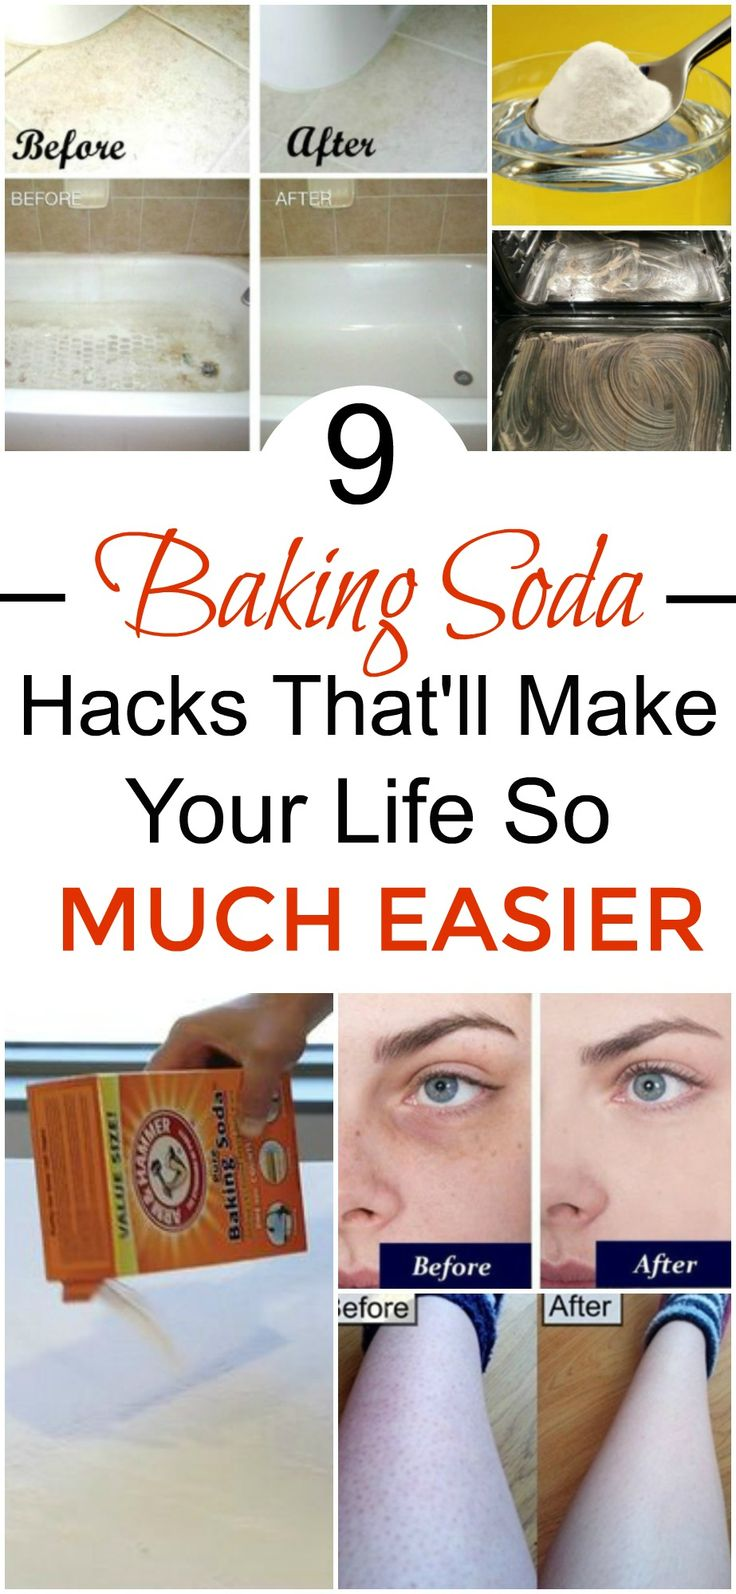 how to make baking soda out of baking powder